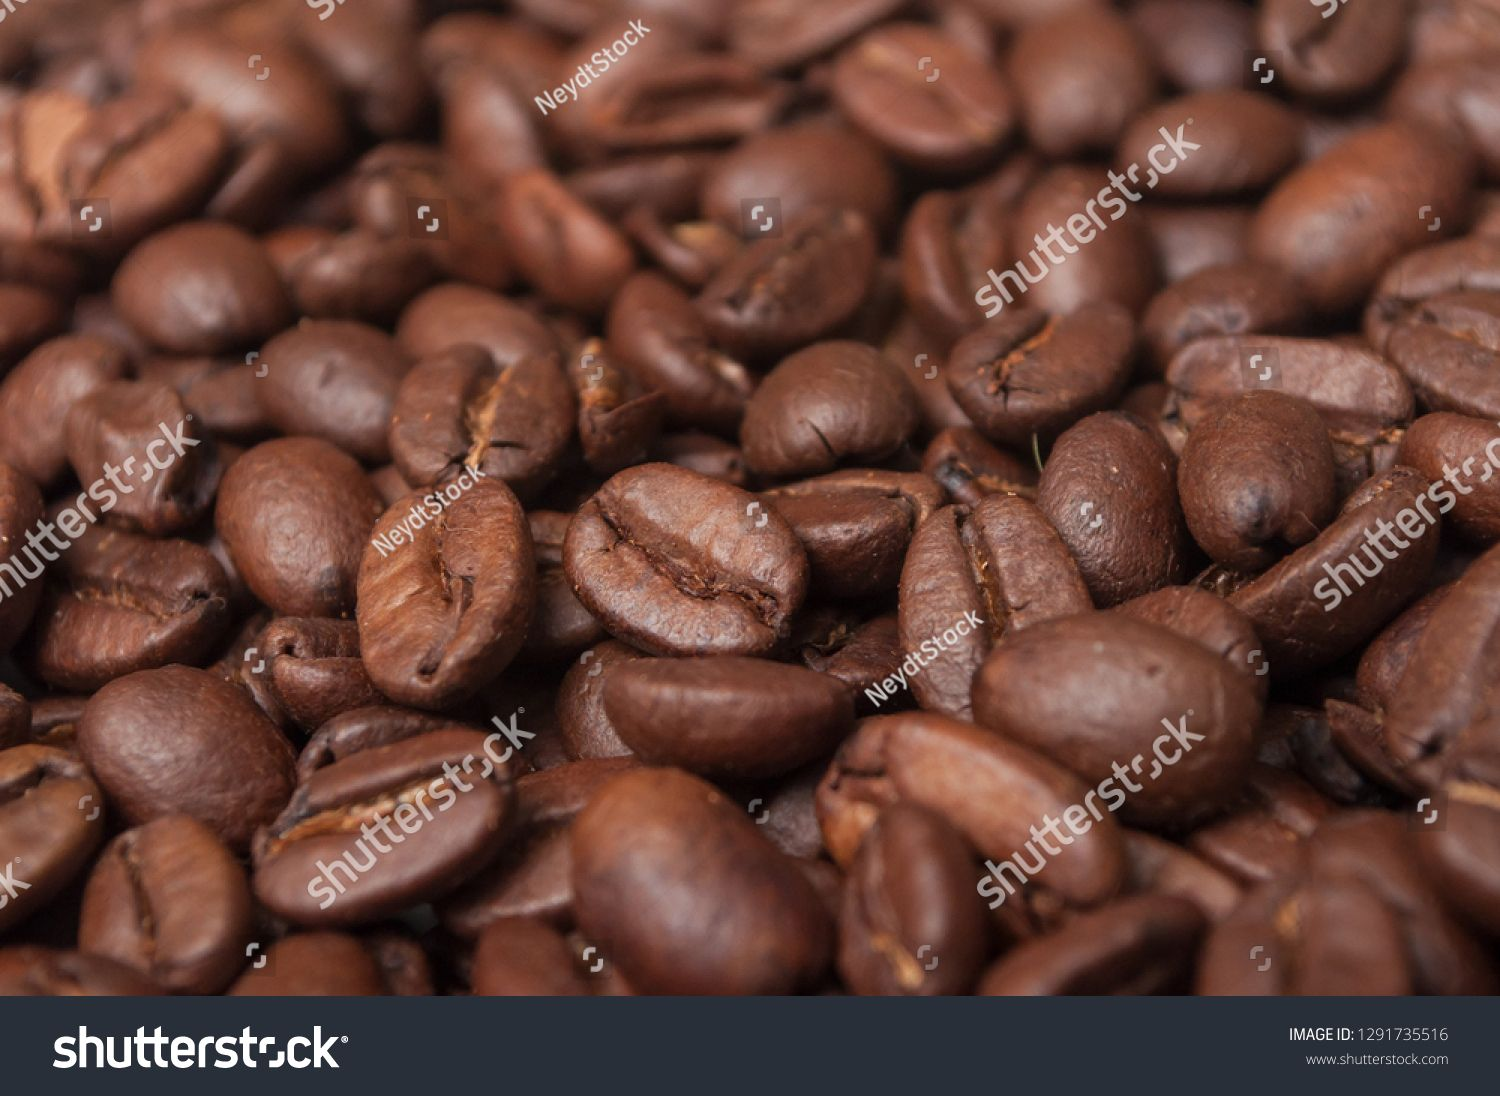 Closeup Of Coffee Beans Texture Ad Sponsored Coffee Closeup Texture Beans In 2020 Coffee Beans Food Beans